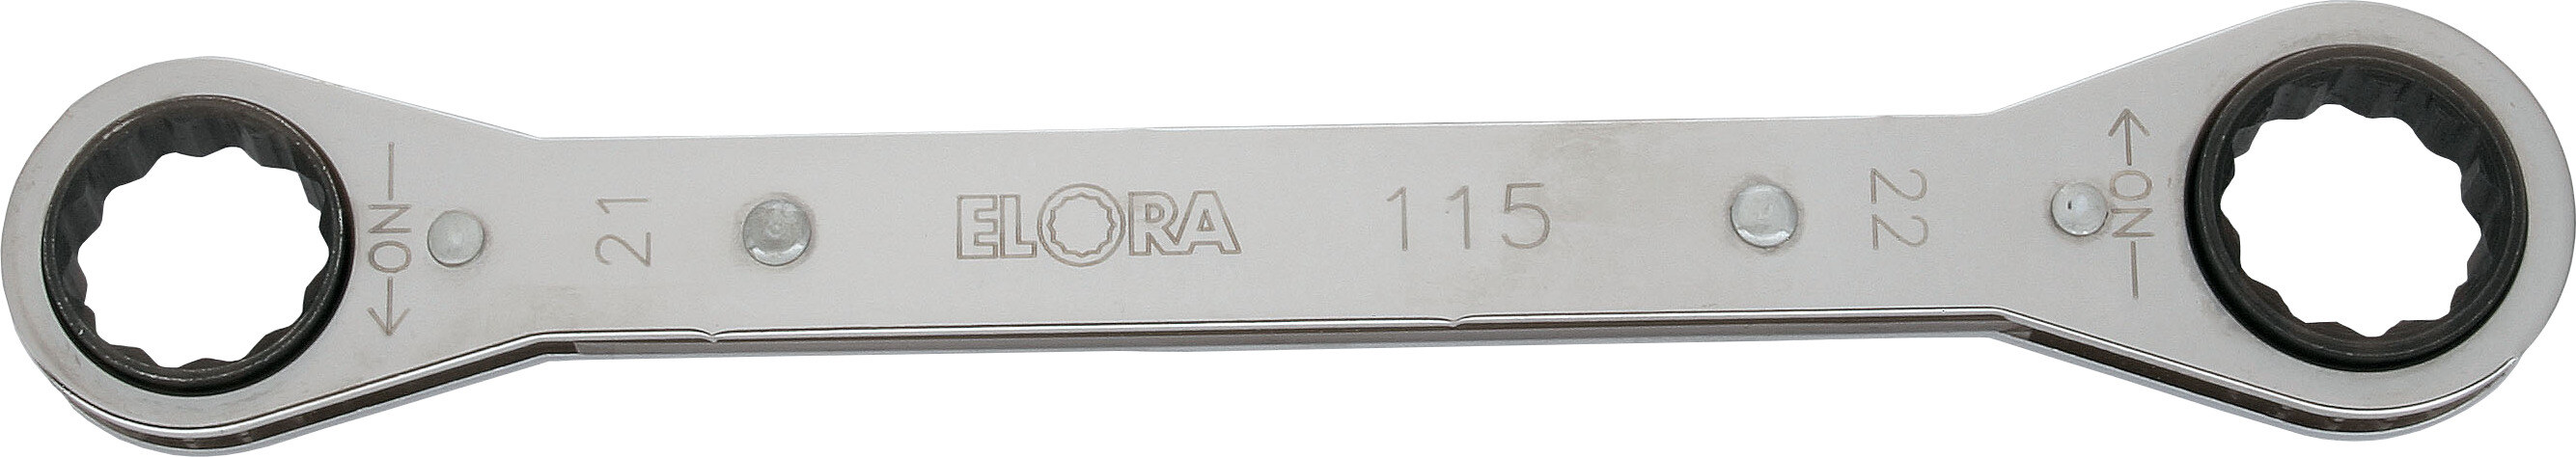 ELORA Ratchet Ring Spanner, straight, ELORA-115-8x9 mm